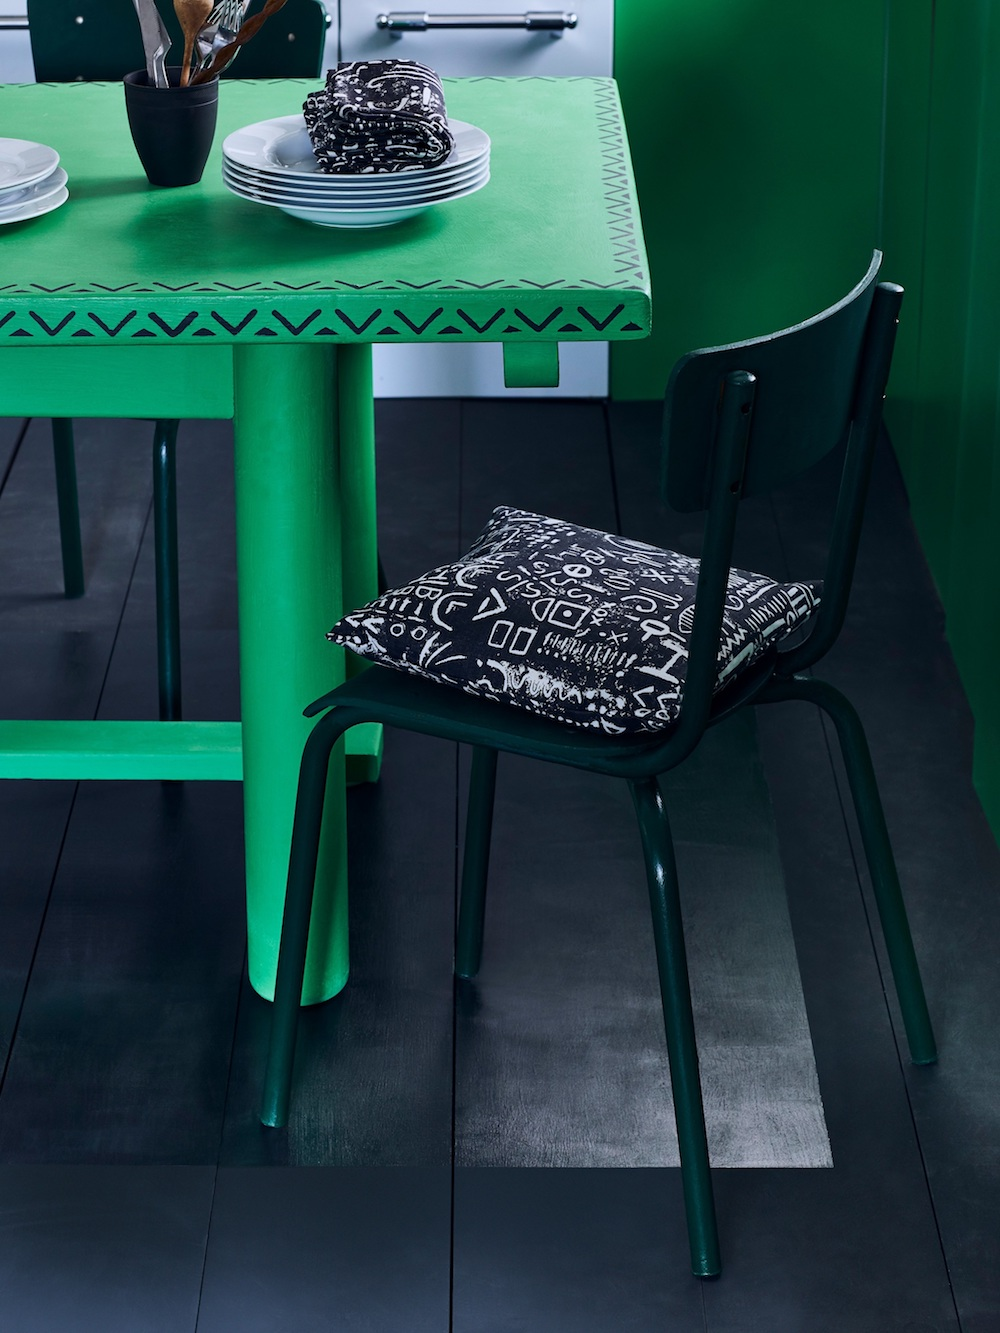 Annie Sloan - Kitchen - Chalk Paint in Antibes Green, Graphite floorboards with Gloss Lacquer detail - Lifestyle - Portrait (2).jpg